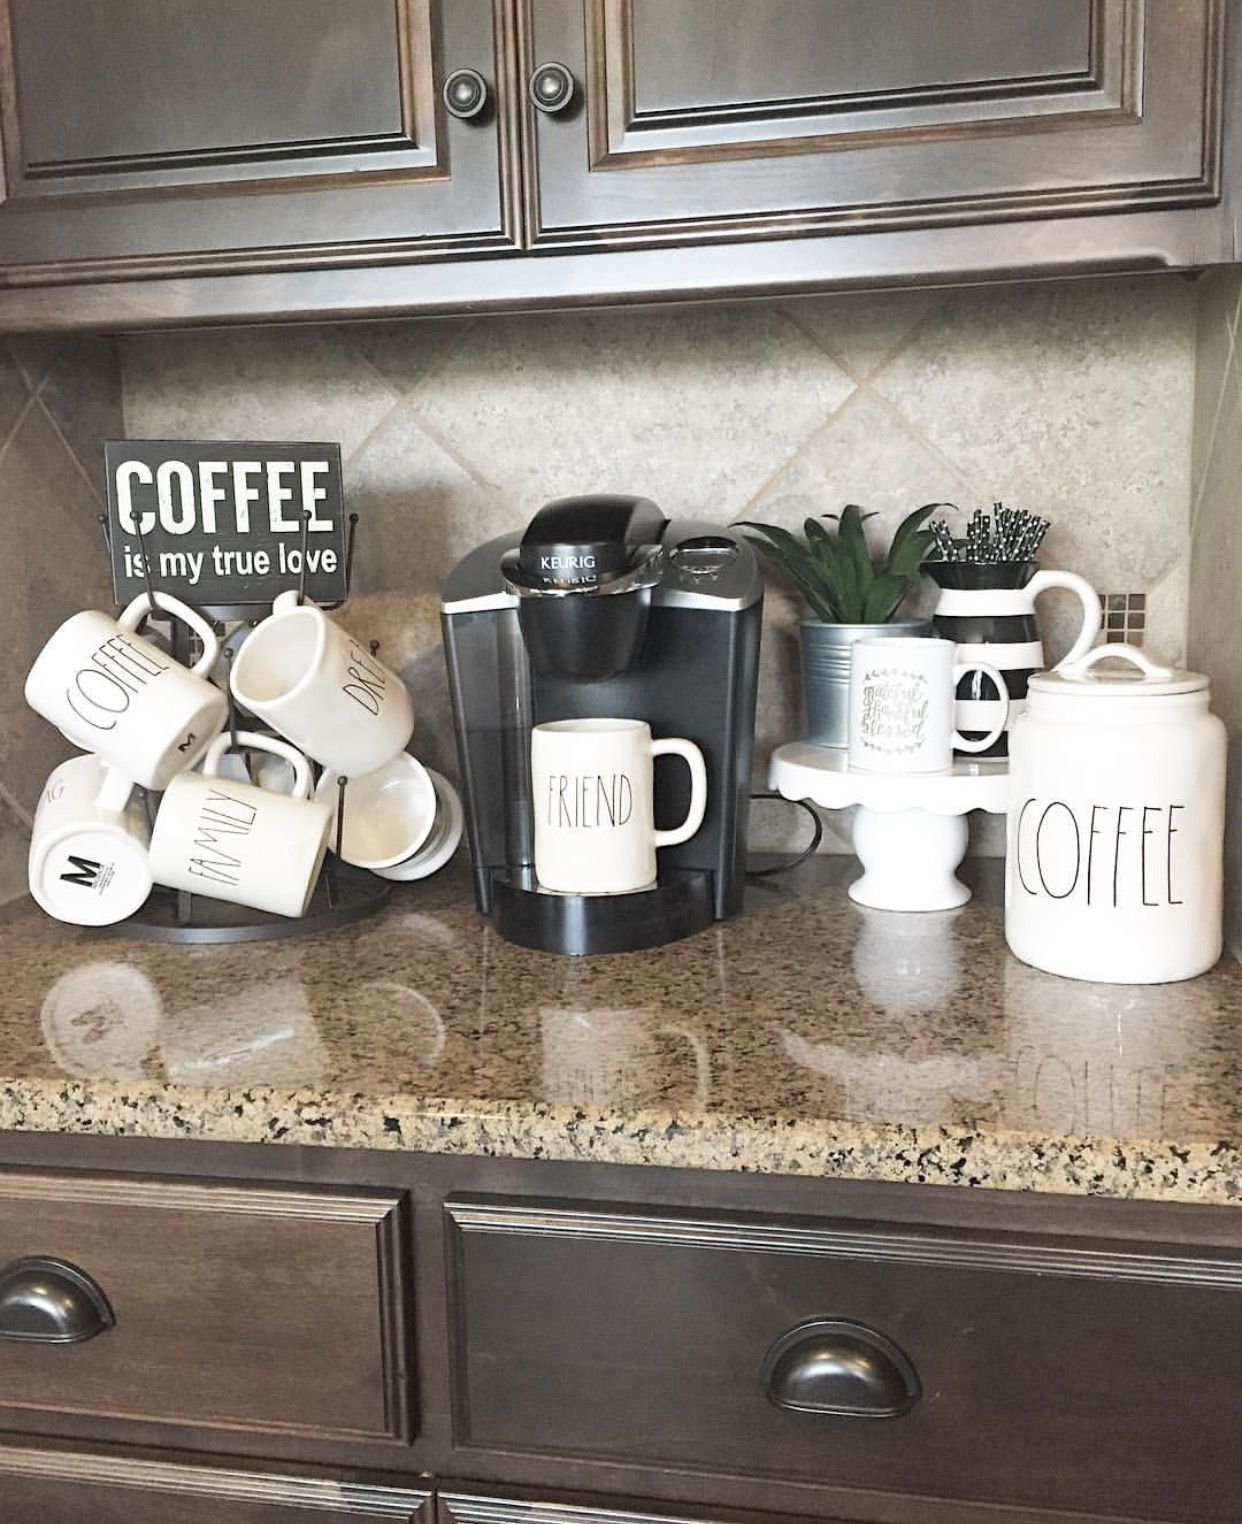 Home Coffee Bar Design Ideas: Coffee Bar Home Image By Cherie Clark On For The Kitchen